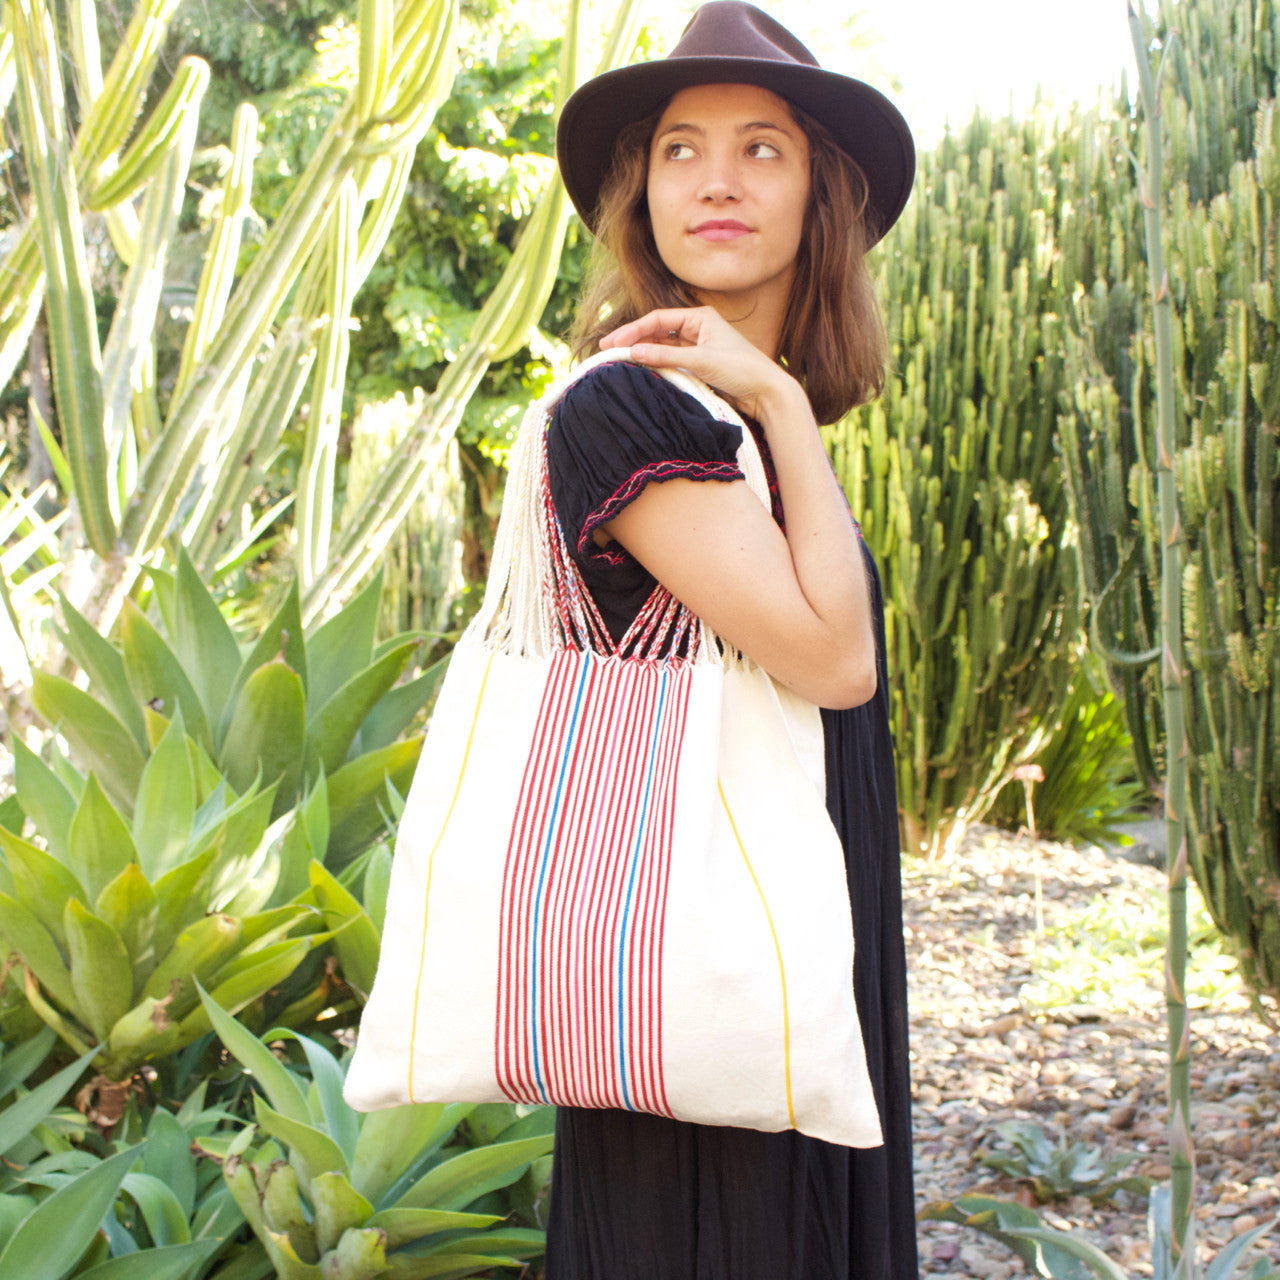 Raya Shoulder Bag  Shoulder Bag White - Cielo Collective handmade with tradition creativity and integrity